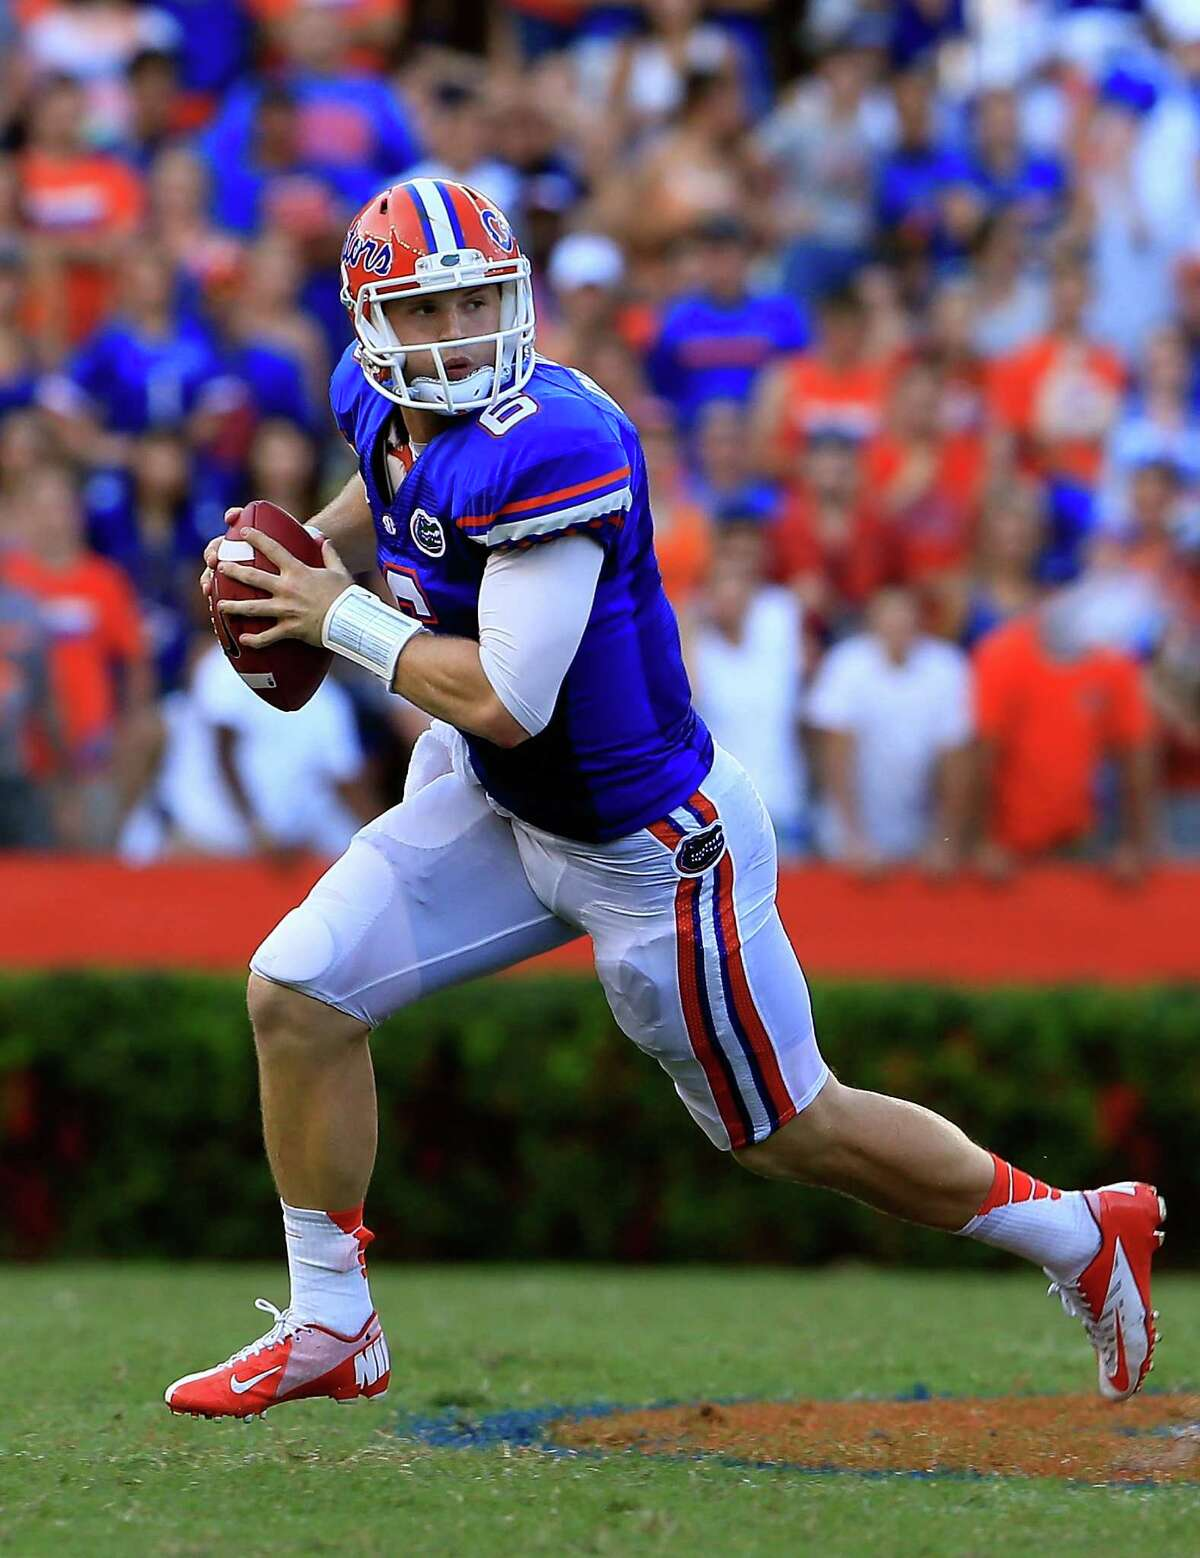 GAINESVILLE, FL - SEPTEMBER 01: Jeff Driskel #6 of the Florida Gators scrambles for yardage during the game against the Bowling Green Falcons at Ben Hill Griffin Stadium on September 1, 2012 in Gainesville, Florida.